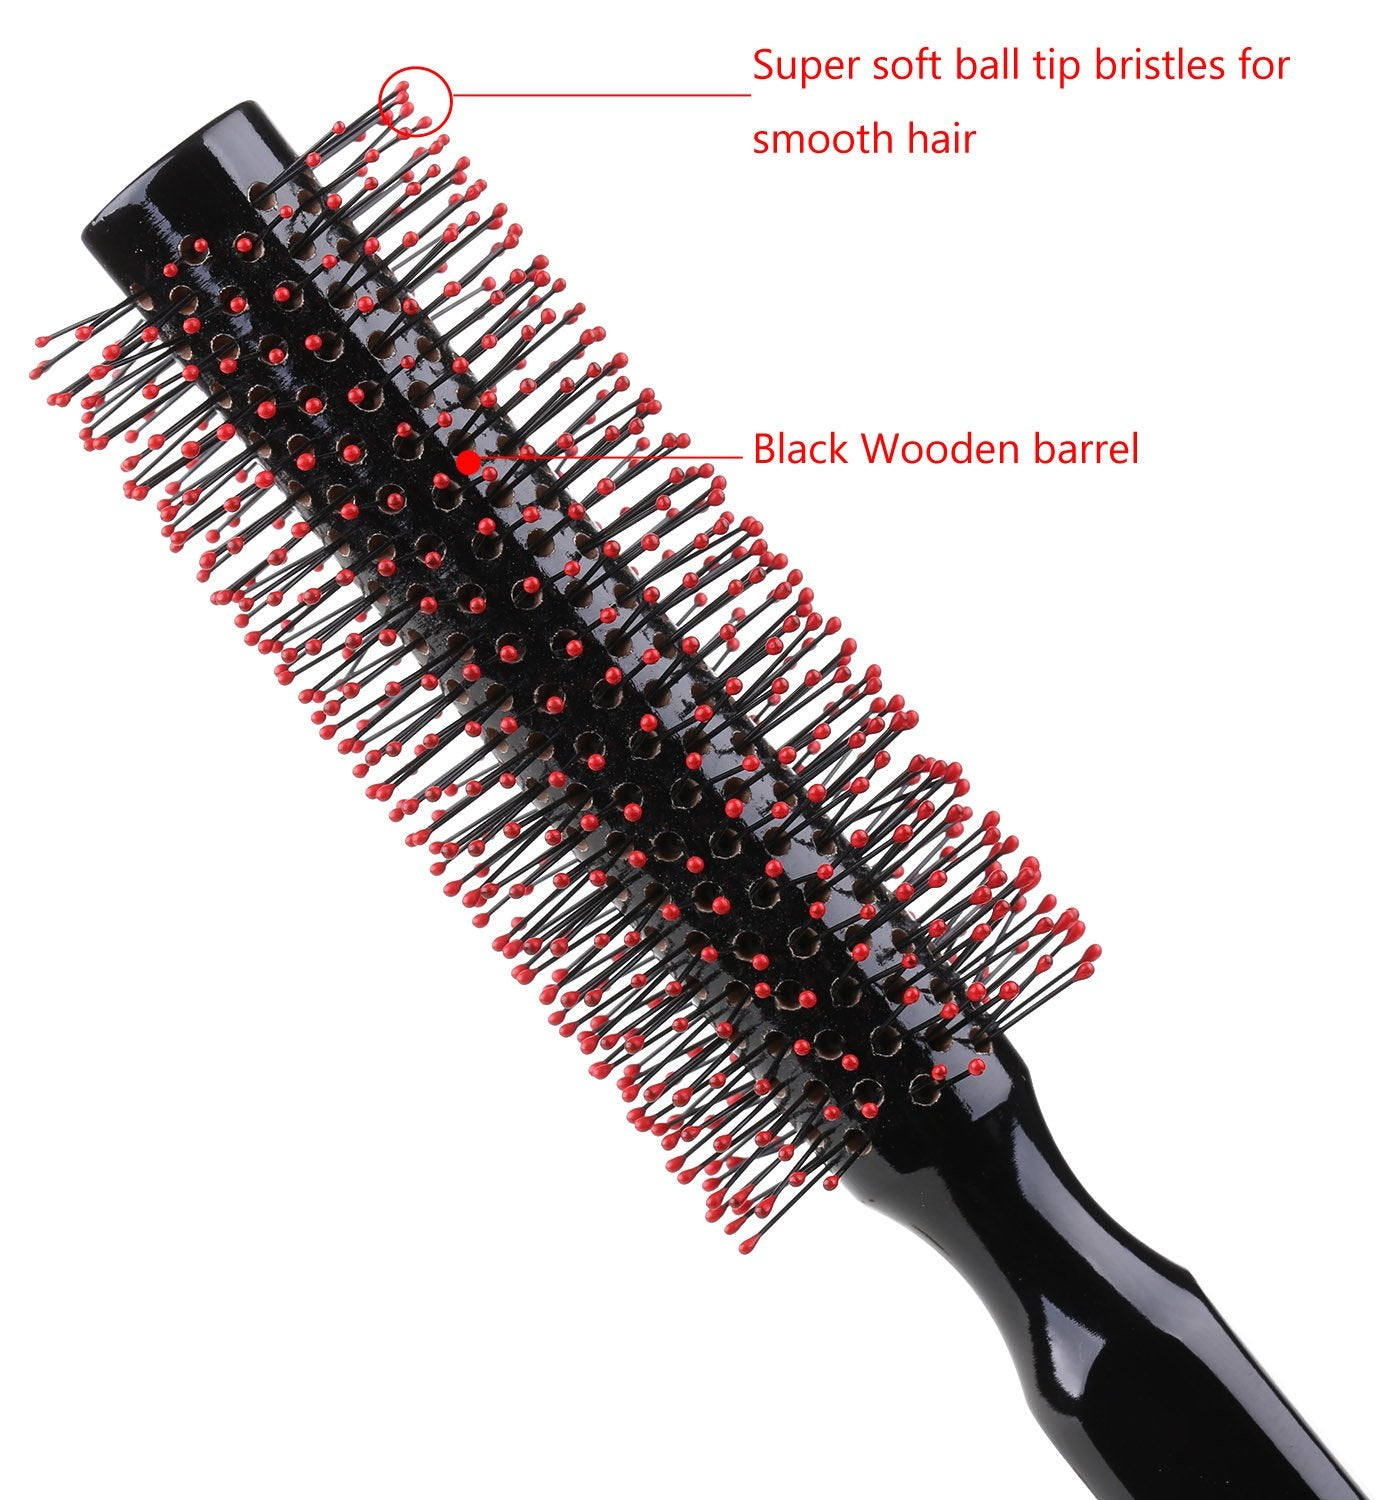 Small Round Hair Brush for Blow Drying with Soft Nylon Bristles-Wooden Handle